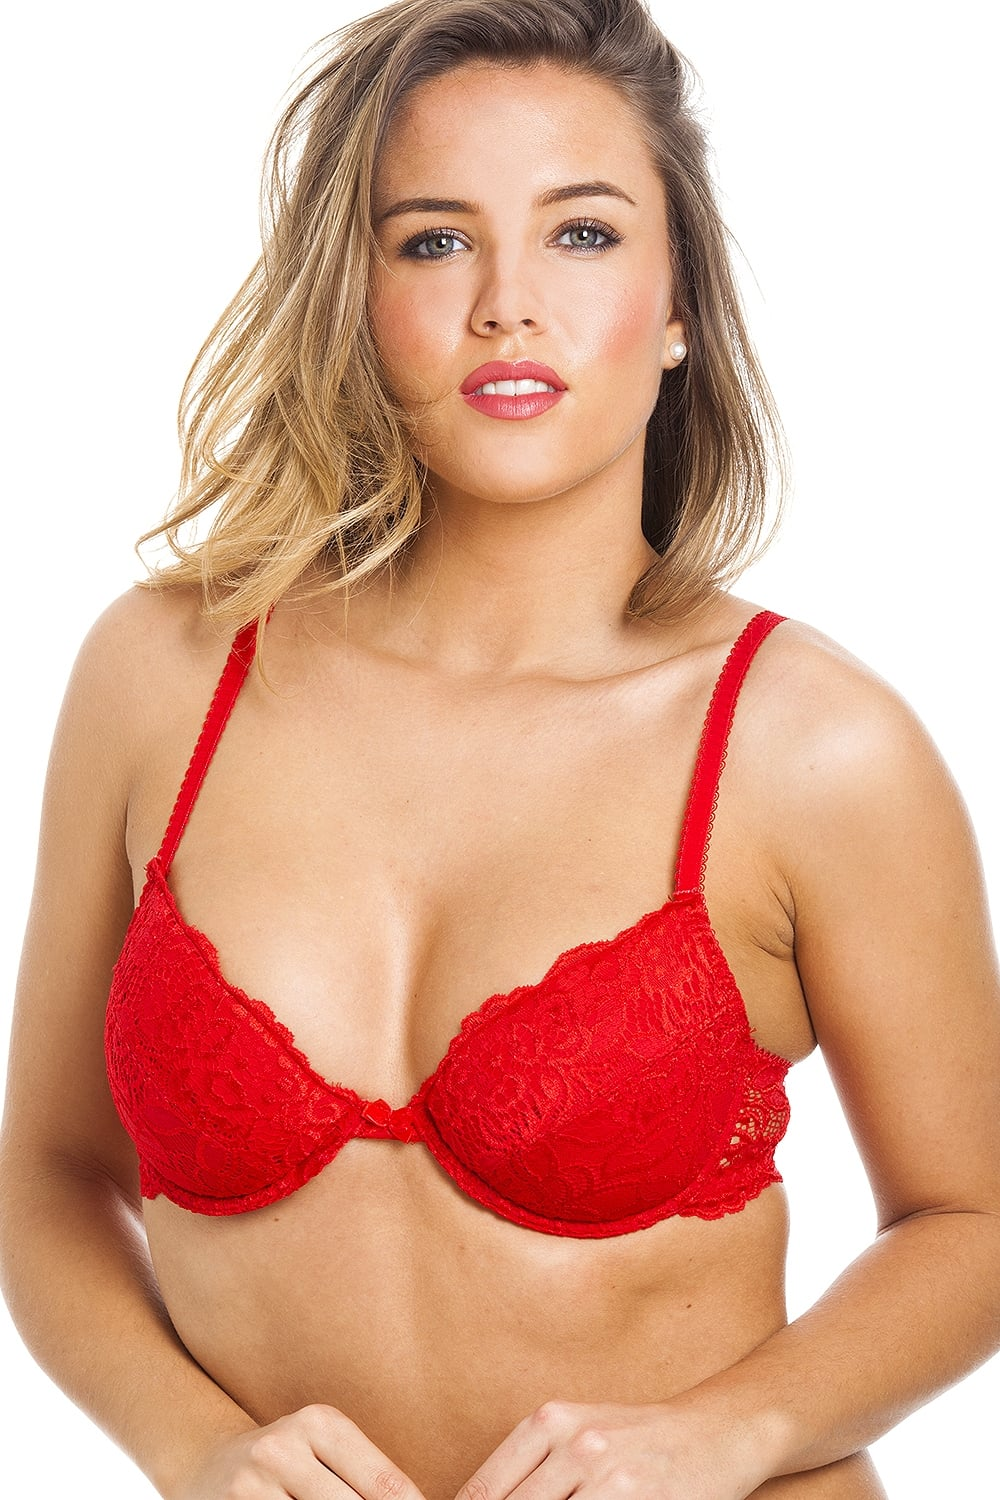 Find hundreds of different styles of padded bras like padded sports bras, Plus Size padded push up bras and more at hitmixeoo.gq! Get a confidence lift with padded bras from hitmixeoo.gq, your online supplier of lingerie and accessories! Yandy Red Carpet Ready Blue Lace Bra. $ Yandy Little Thrills Beige Bra. $ 3 for $ Yandy Red.